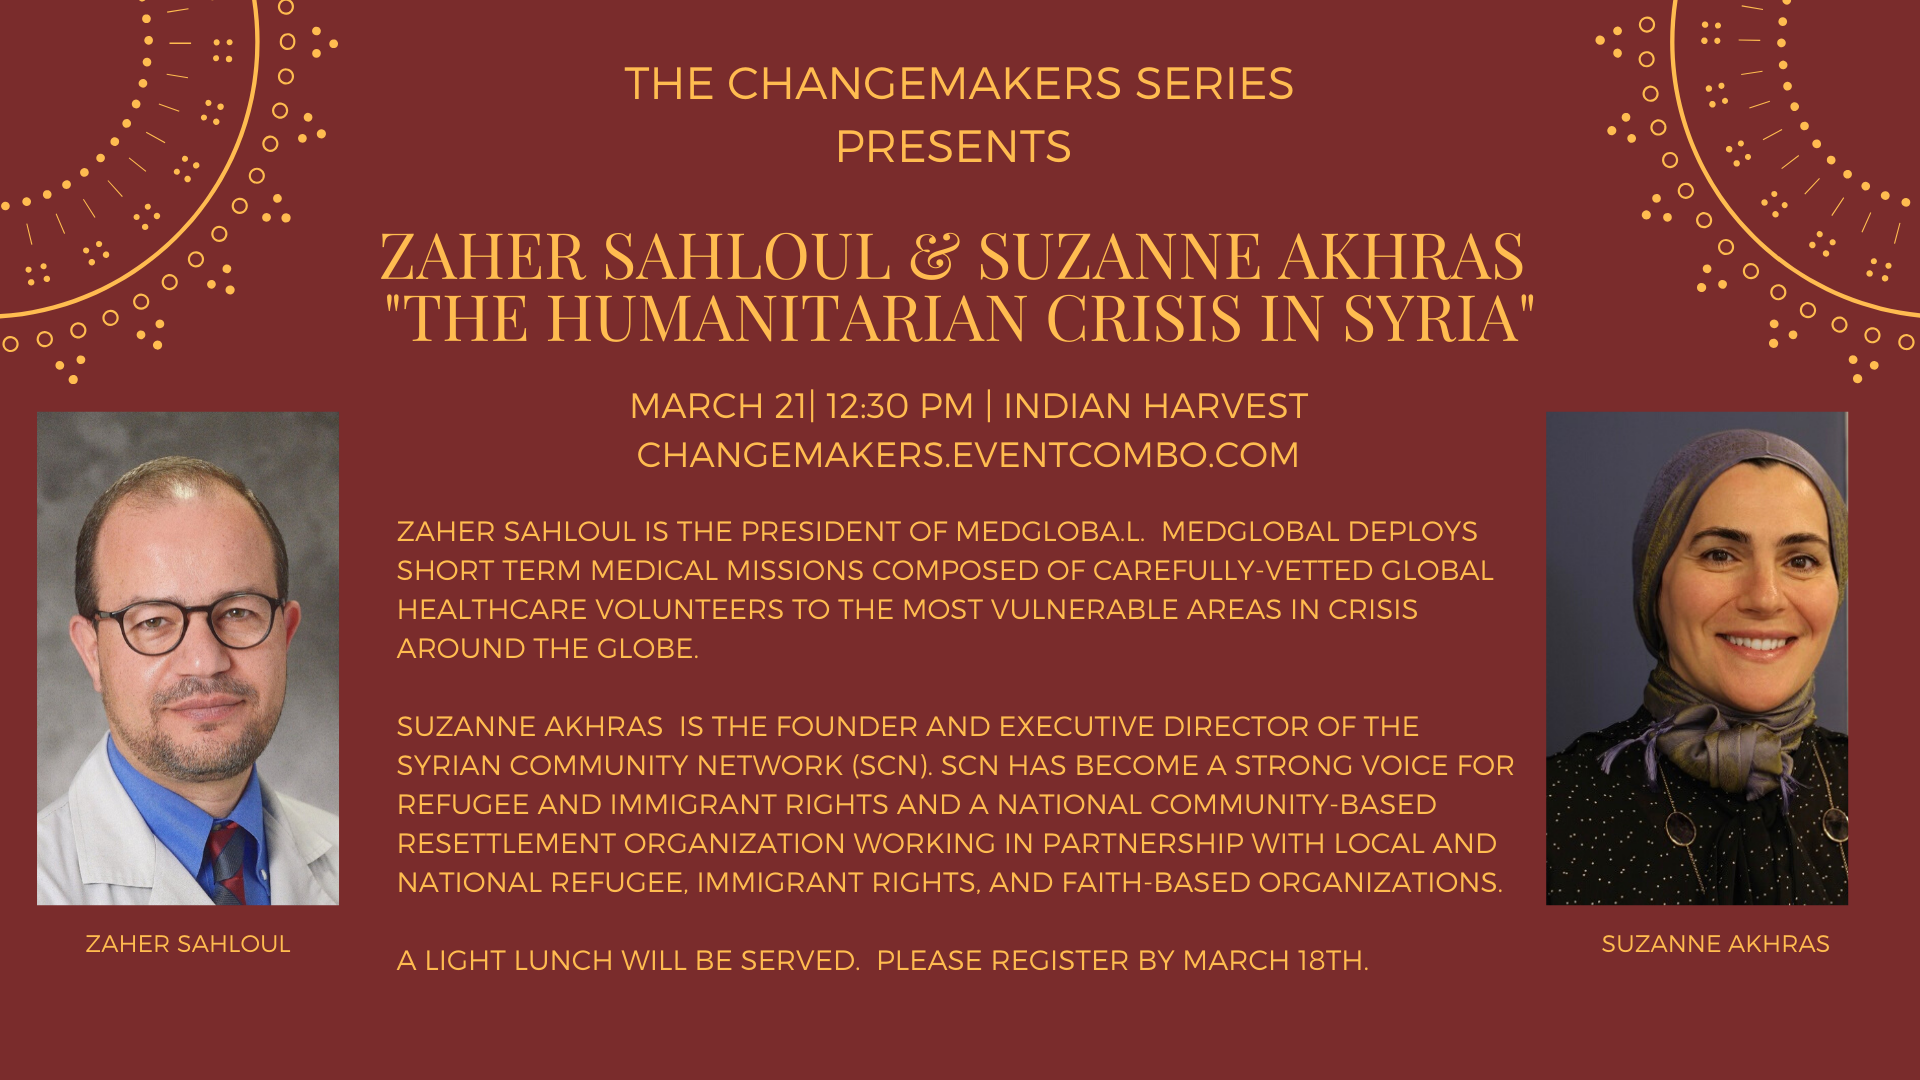 The Changemakers Series: The Humanitarian Crisis in Syria